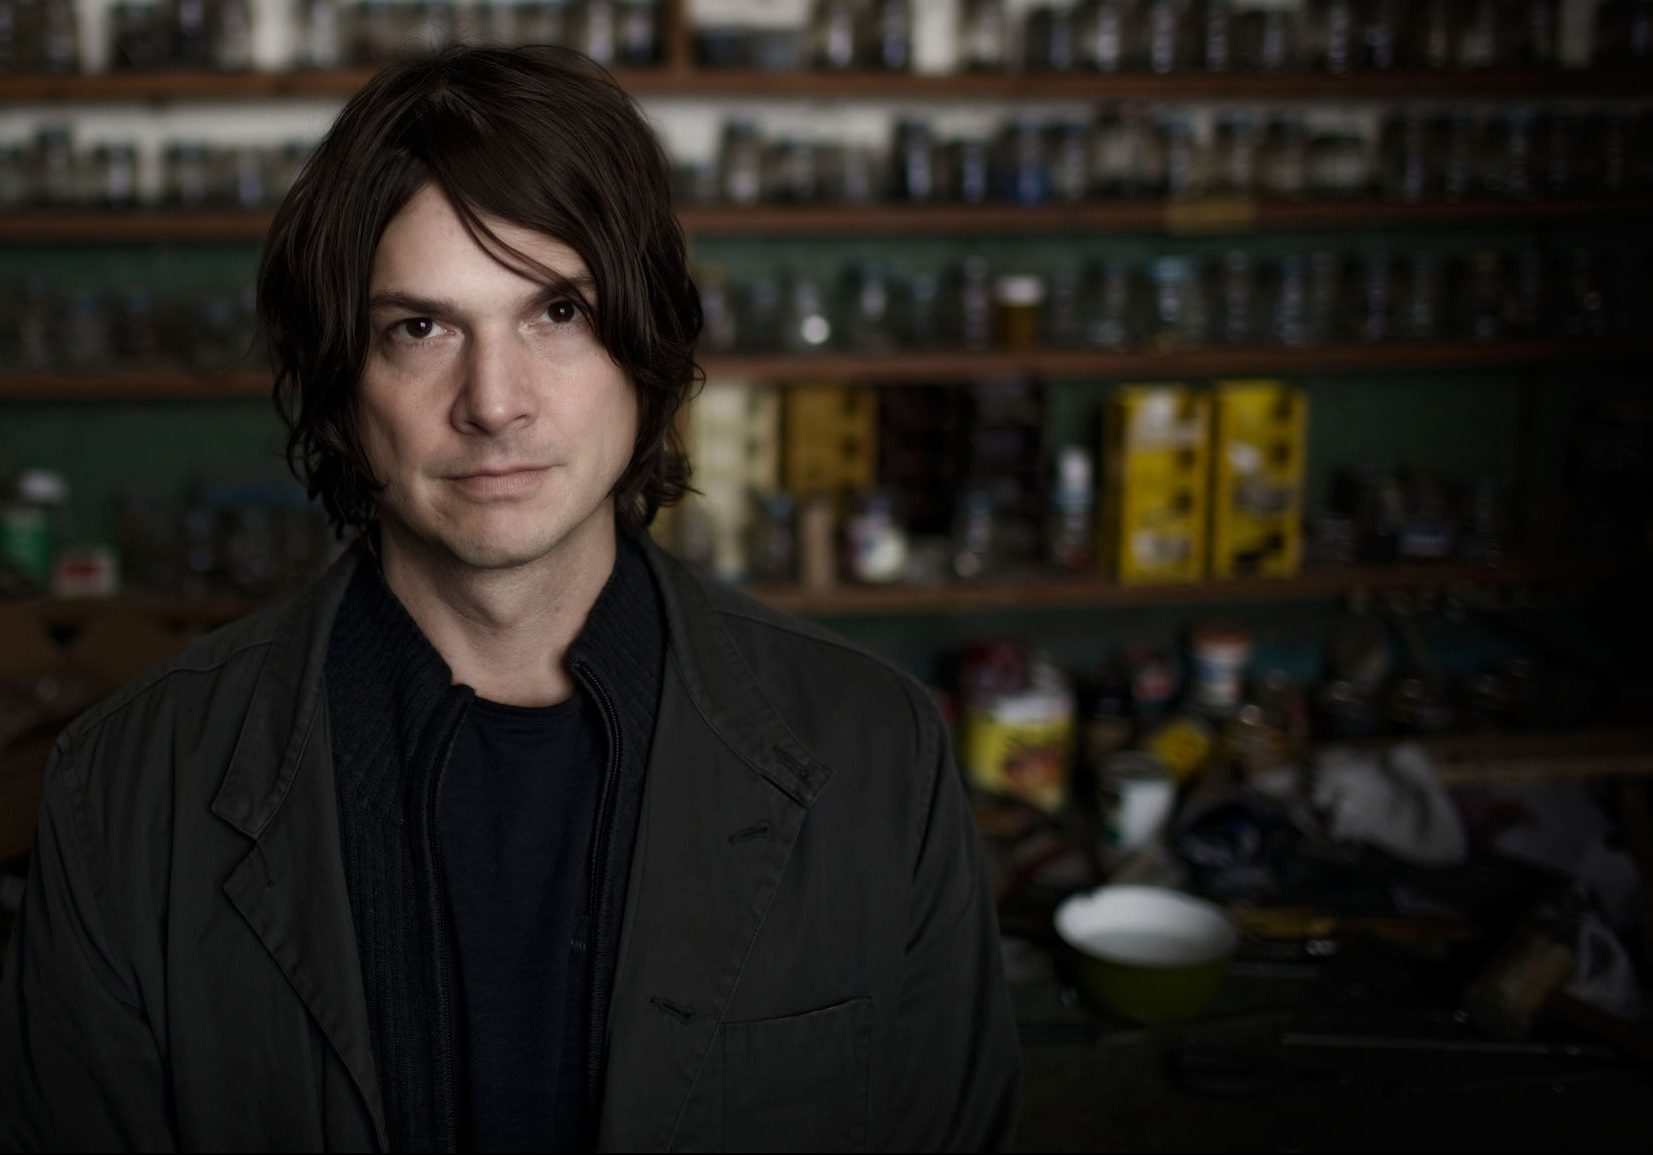 PODCAST EPISODE 001: Glenn Kotche of Wilco